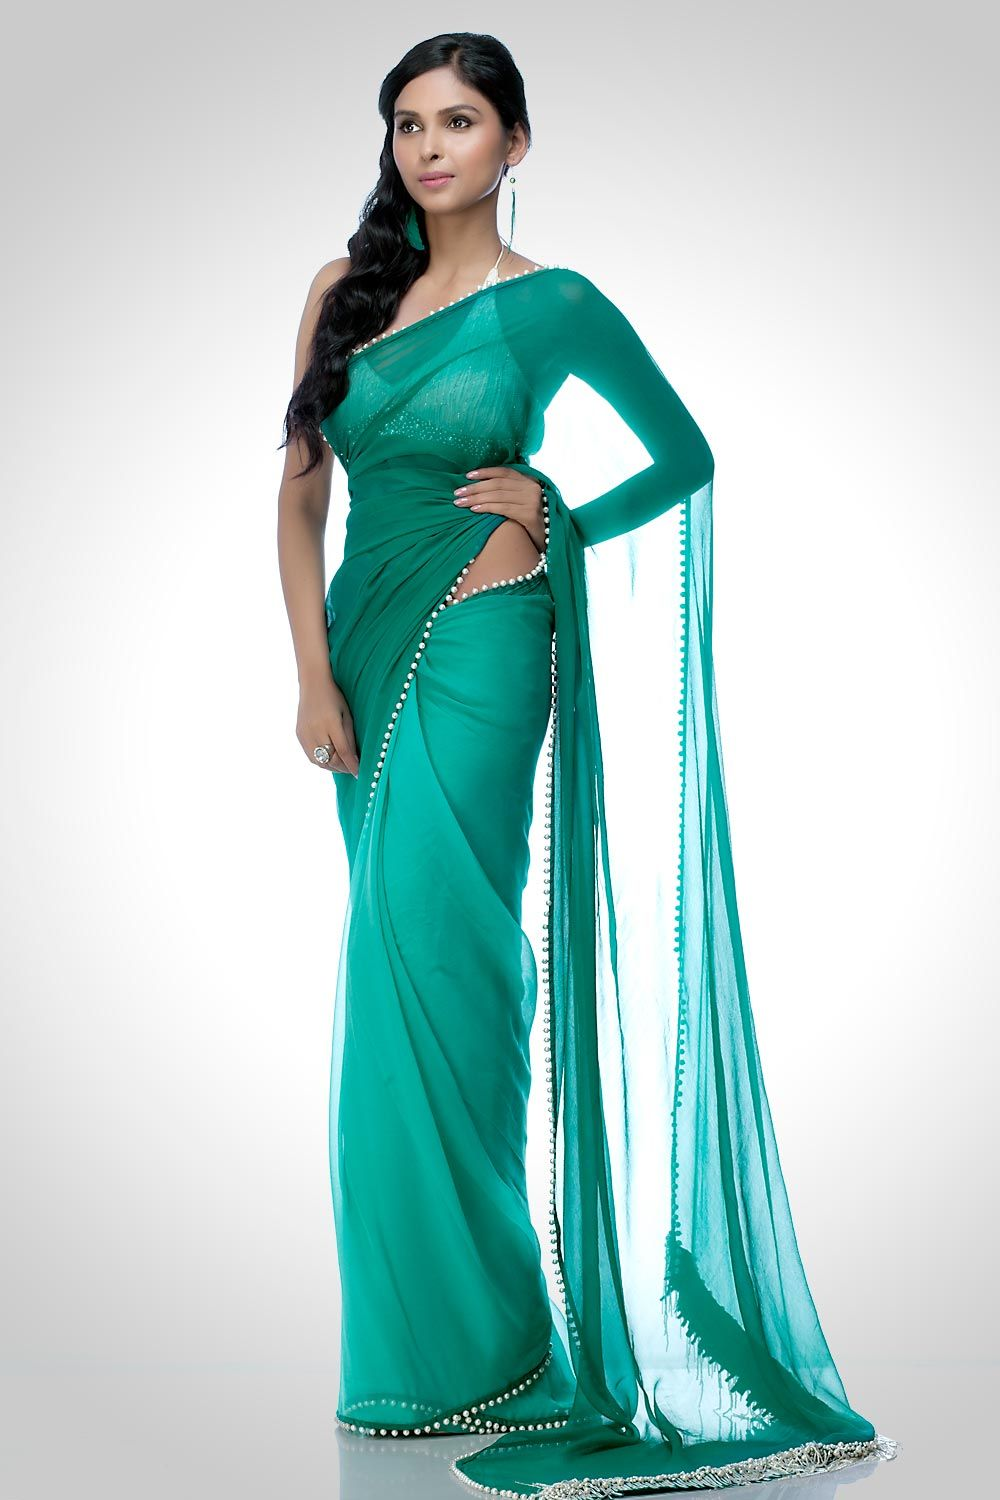 dee63b1c1573f9 Chiffon saree with pearl work | Satya Paul not usually a fan of pearls but  this is stunning